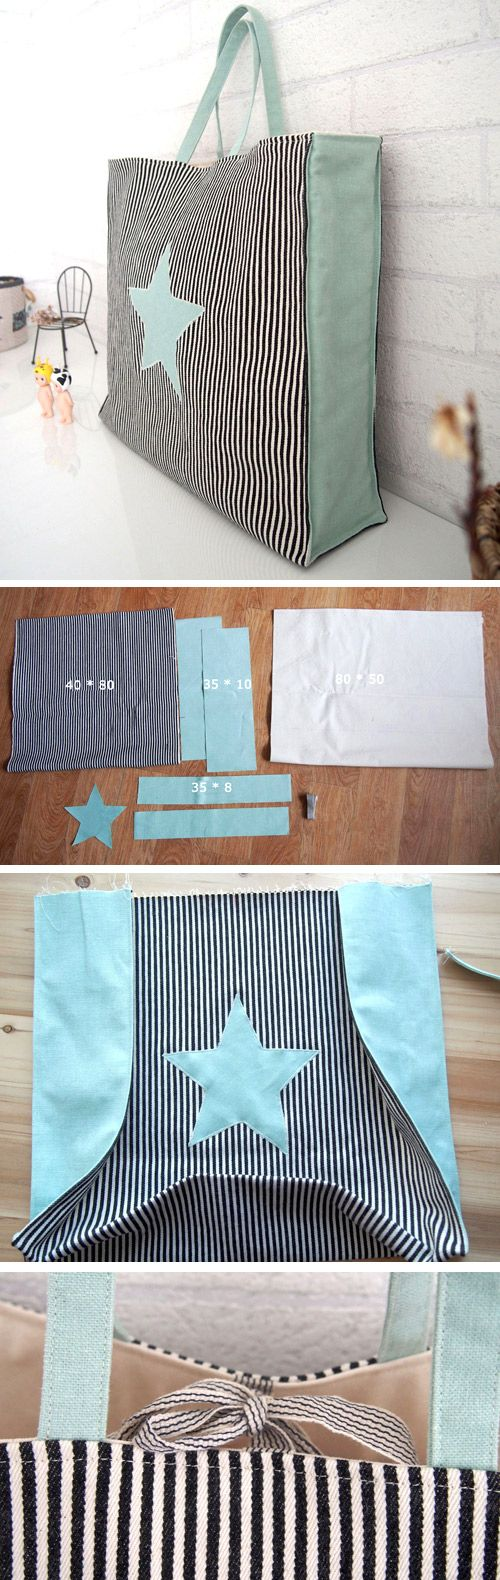 Quick Market Tote Bag Sewing Tutorial. It's a great simple and versatile tote bag that is easy to sew and can be customized a bunch of different ways.  http://www.handmadiya.com/2016/10/market-bag-tutorial.html